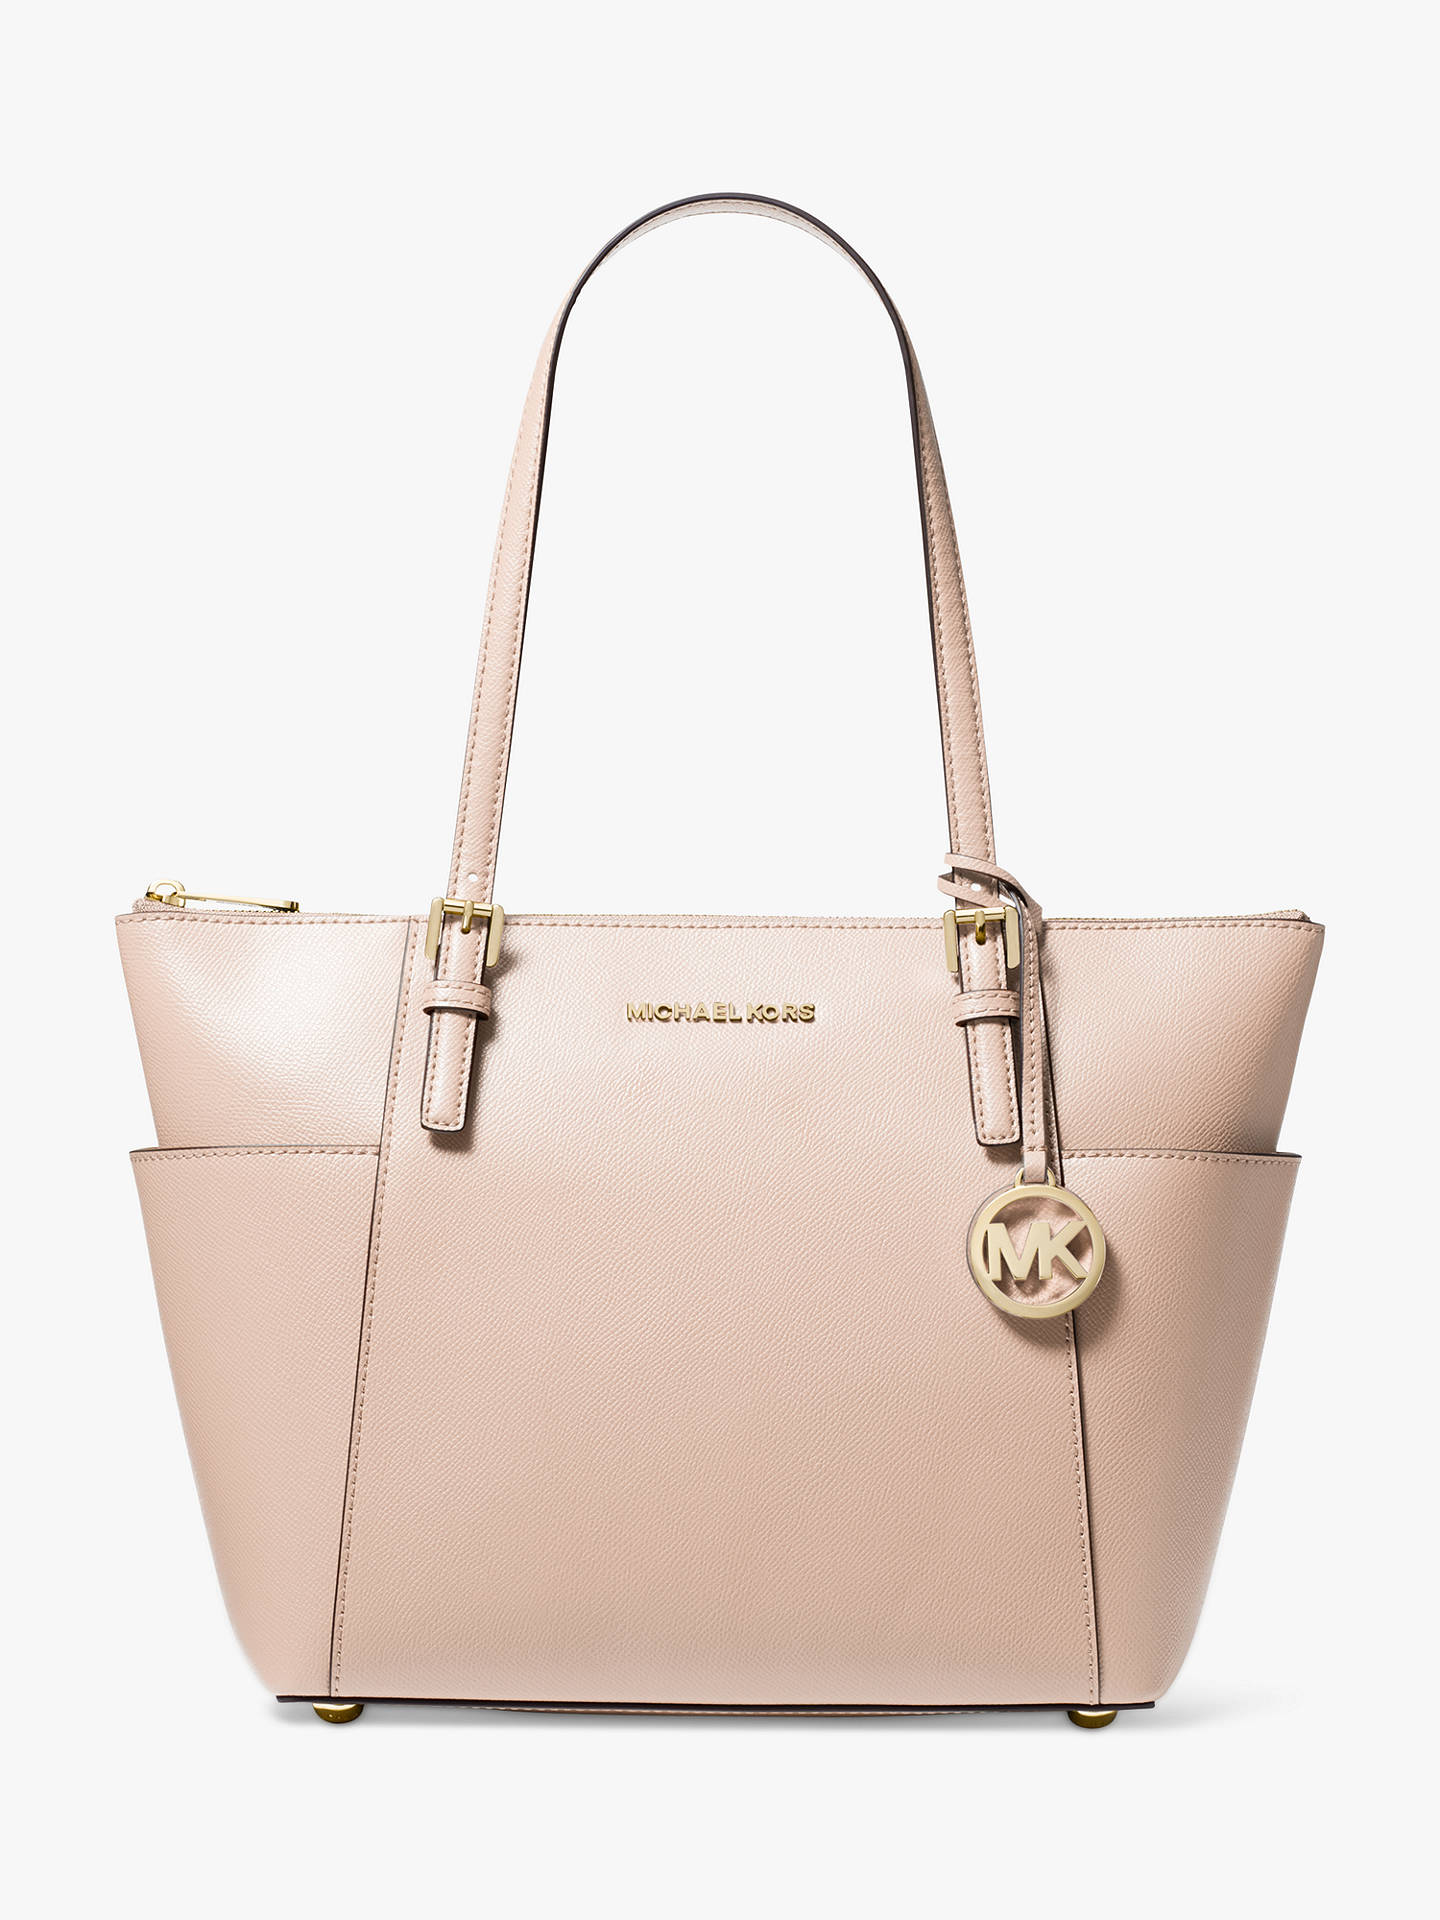 MICHAEL Michael Kors Jet Set EastWest Leather Tote Bag, Soft Pink